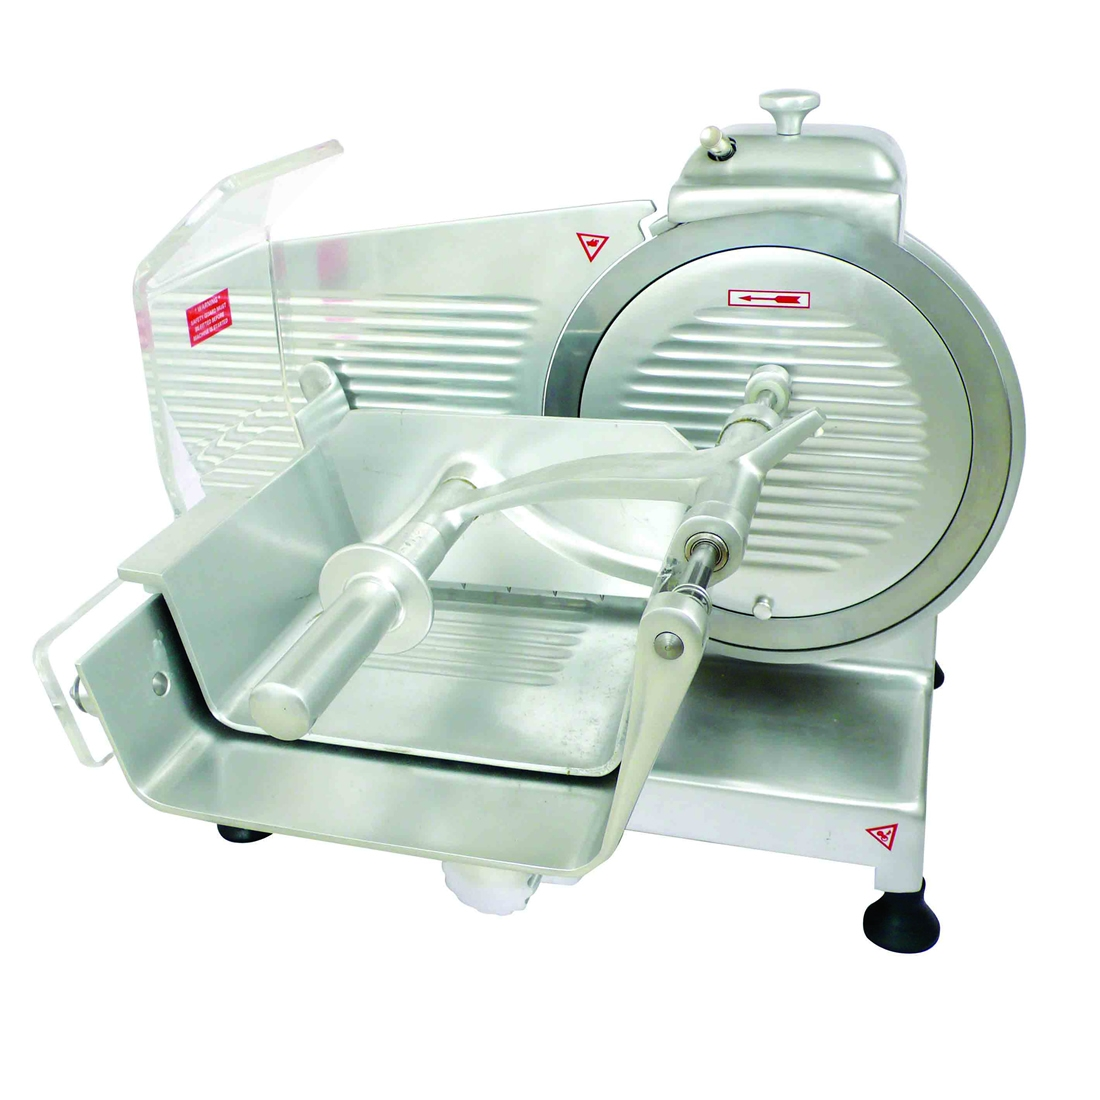 Meat slicer for non-frozen meat - HBS-300C